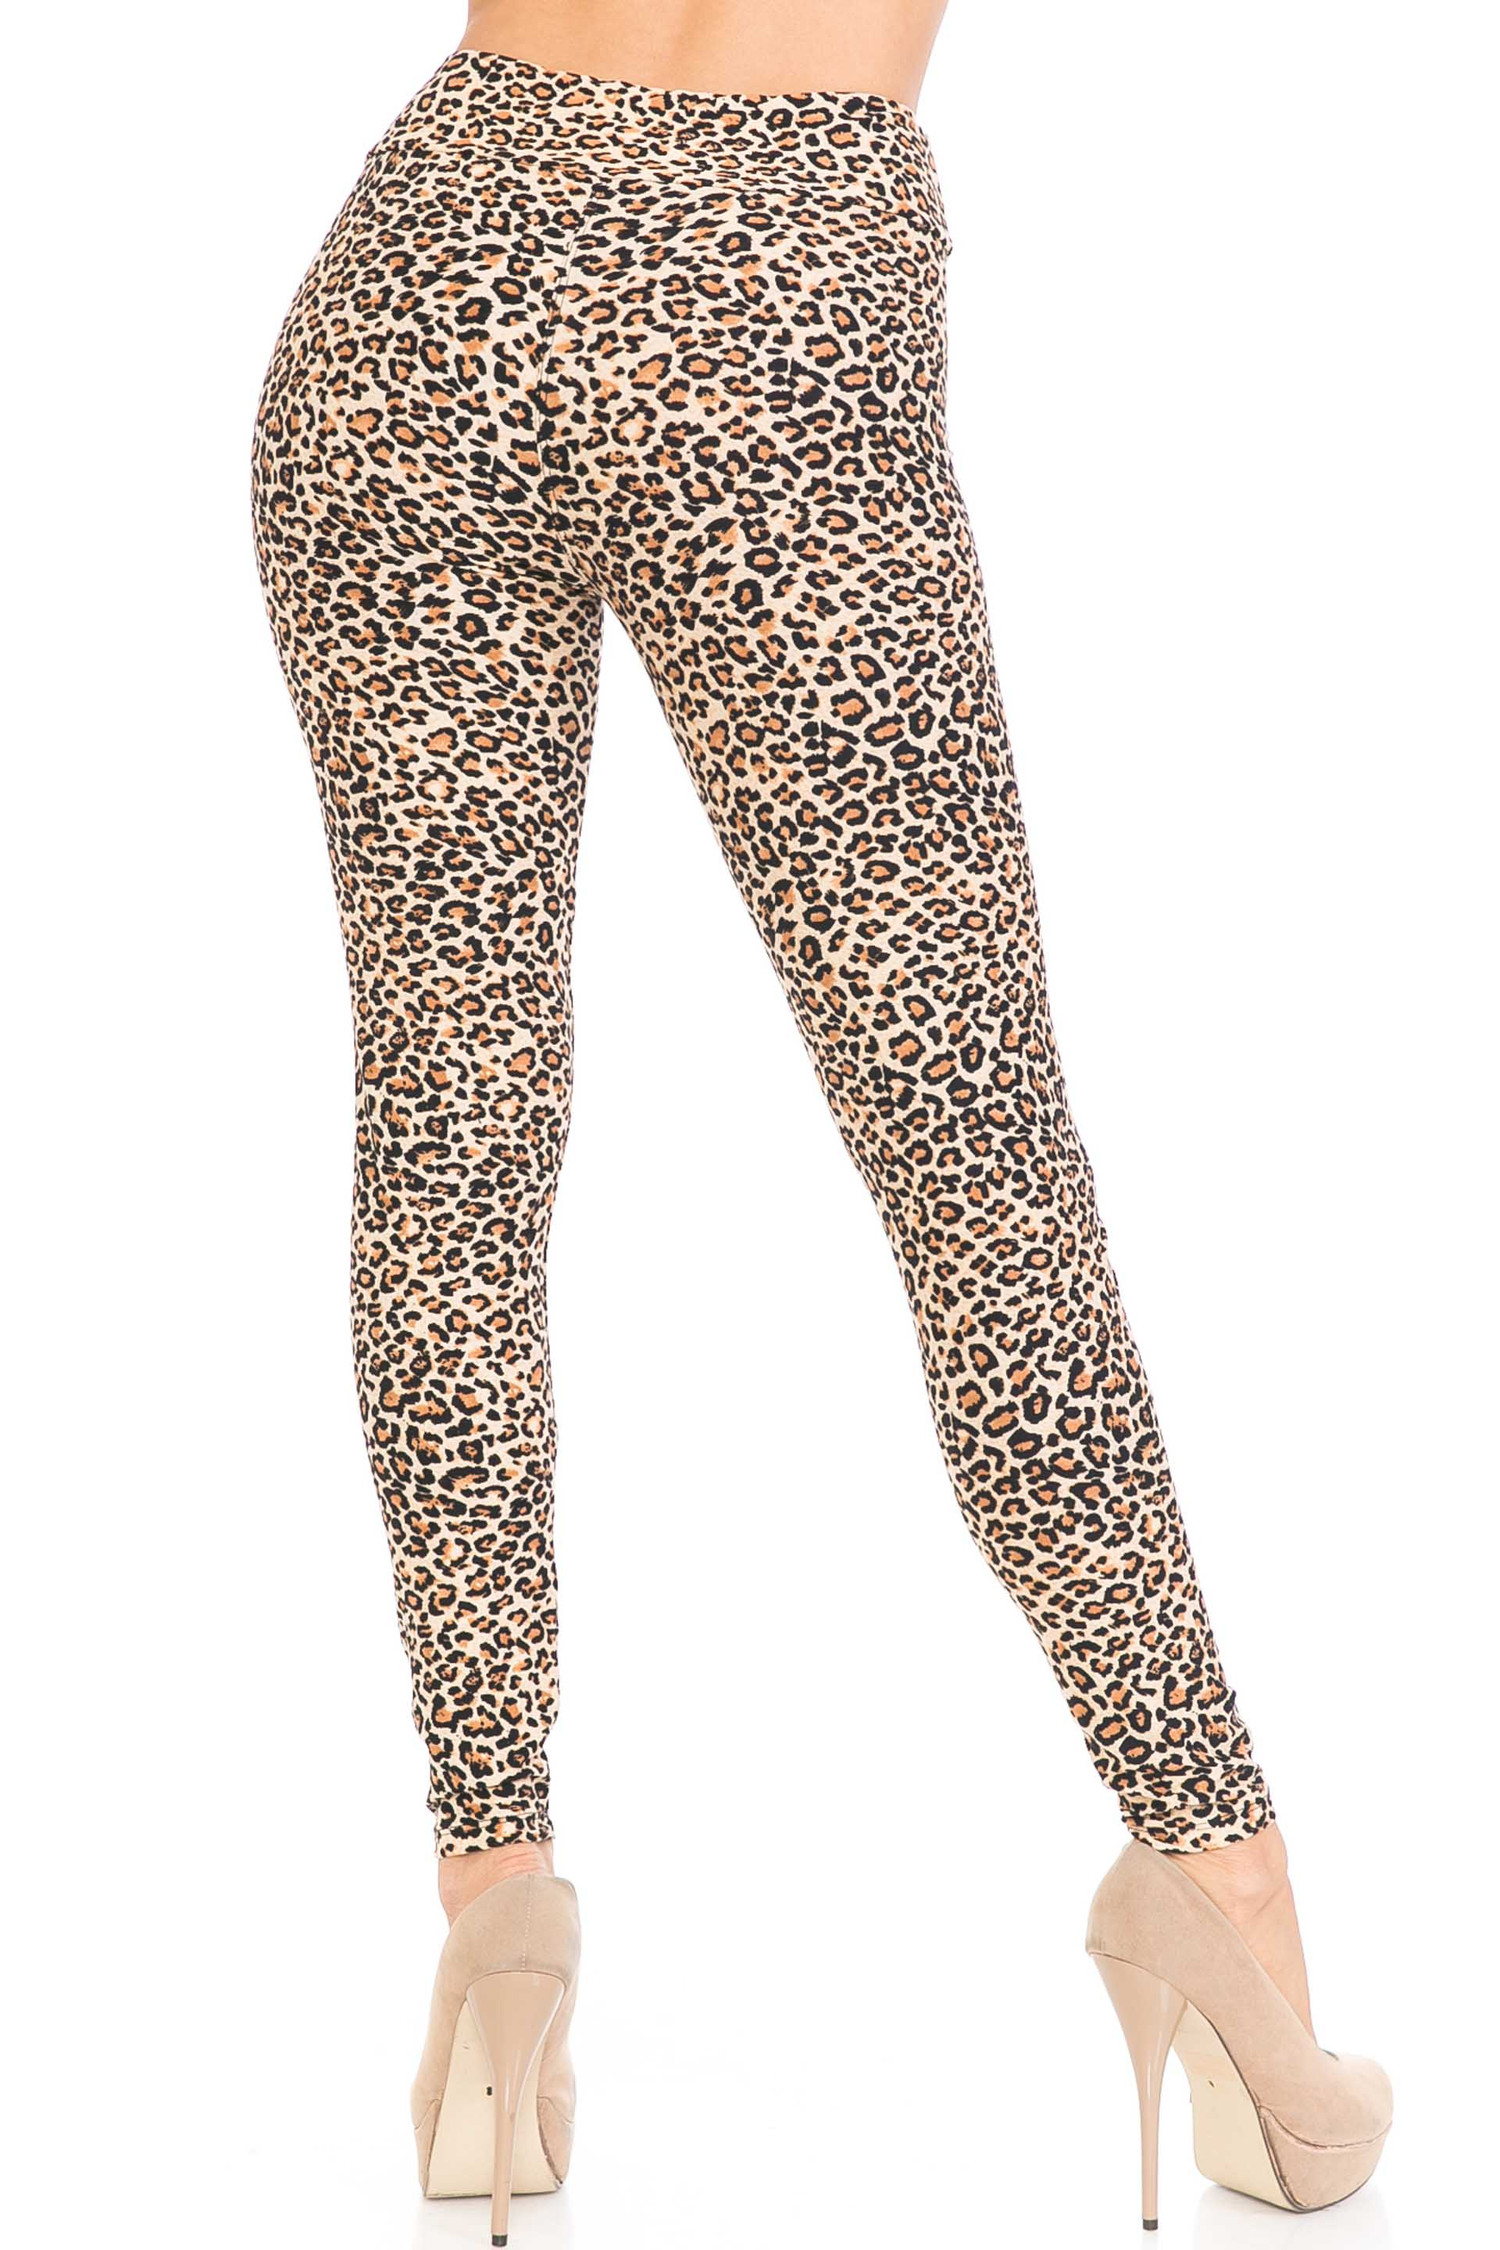 Buttery Soft Untamed Leopard High Waisted Leggings